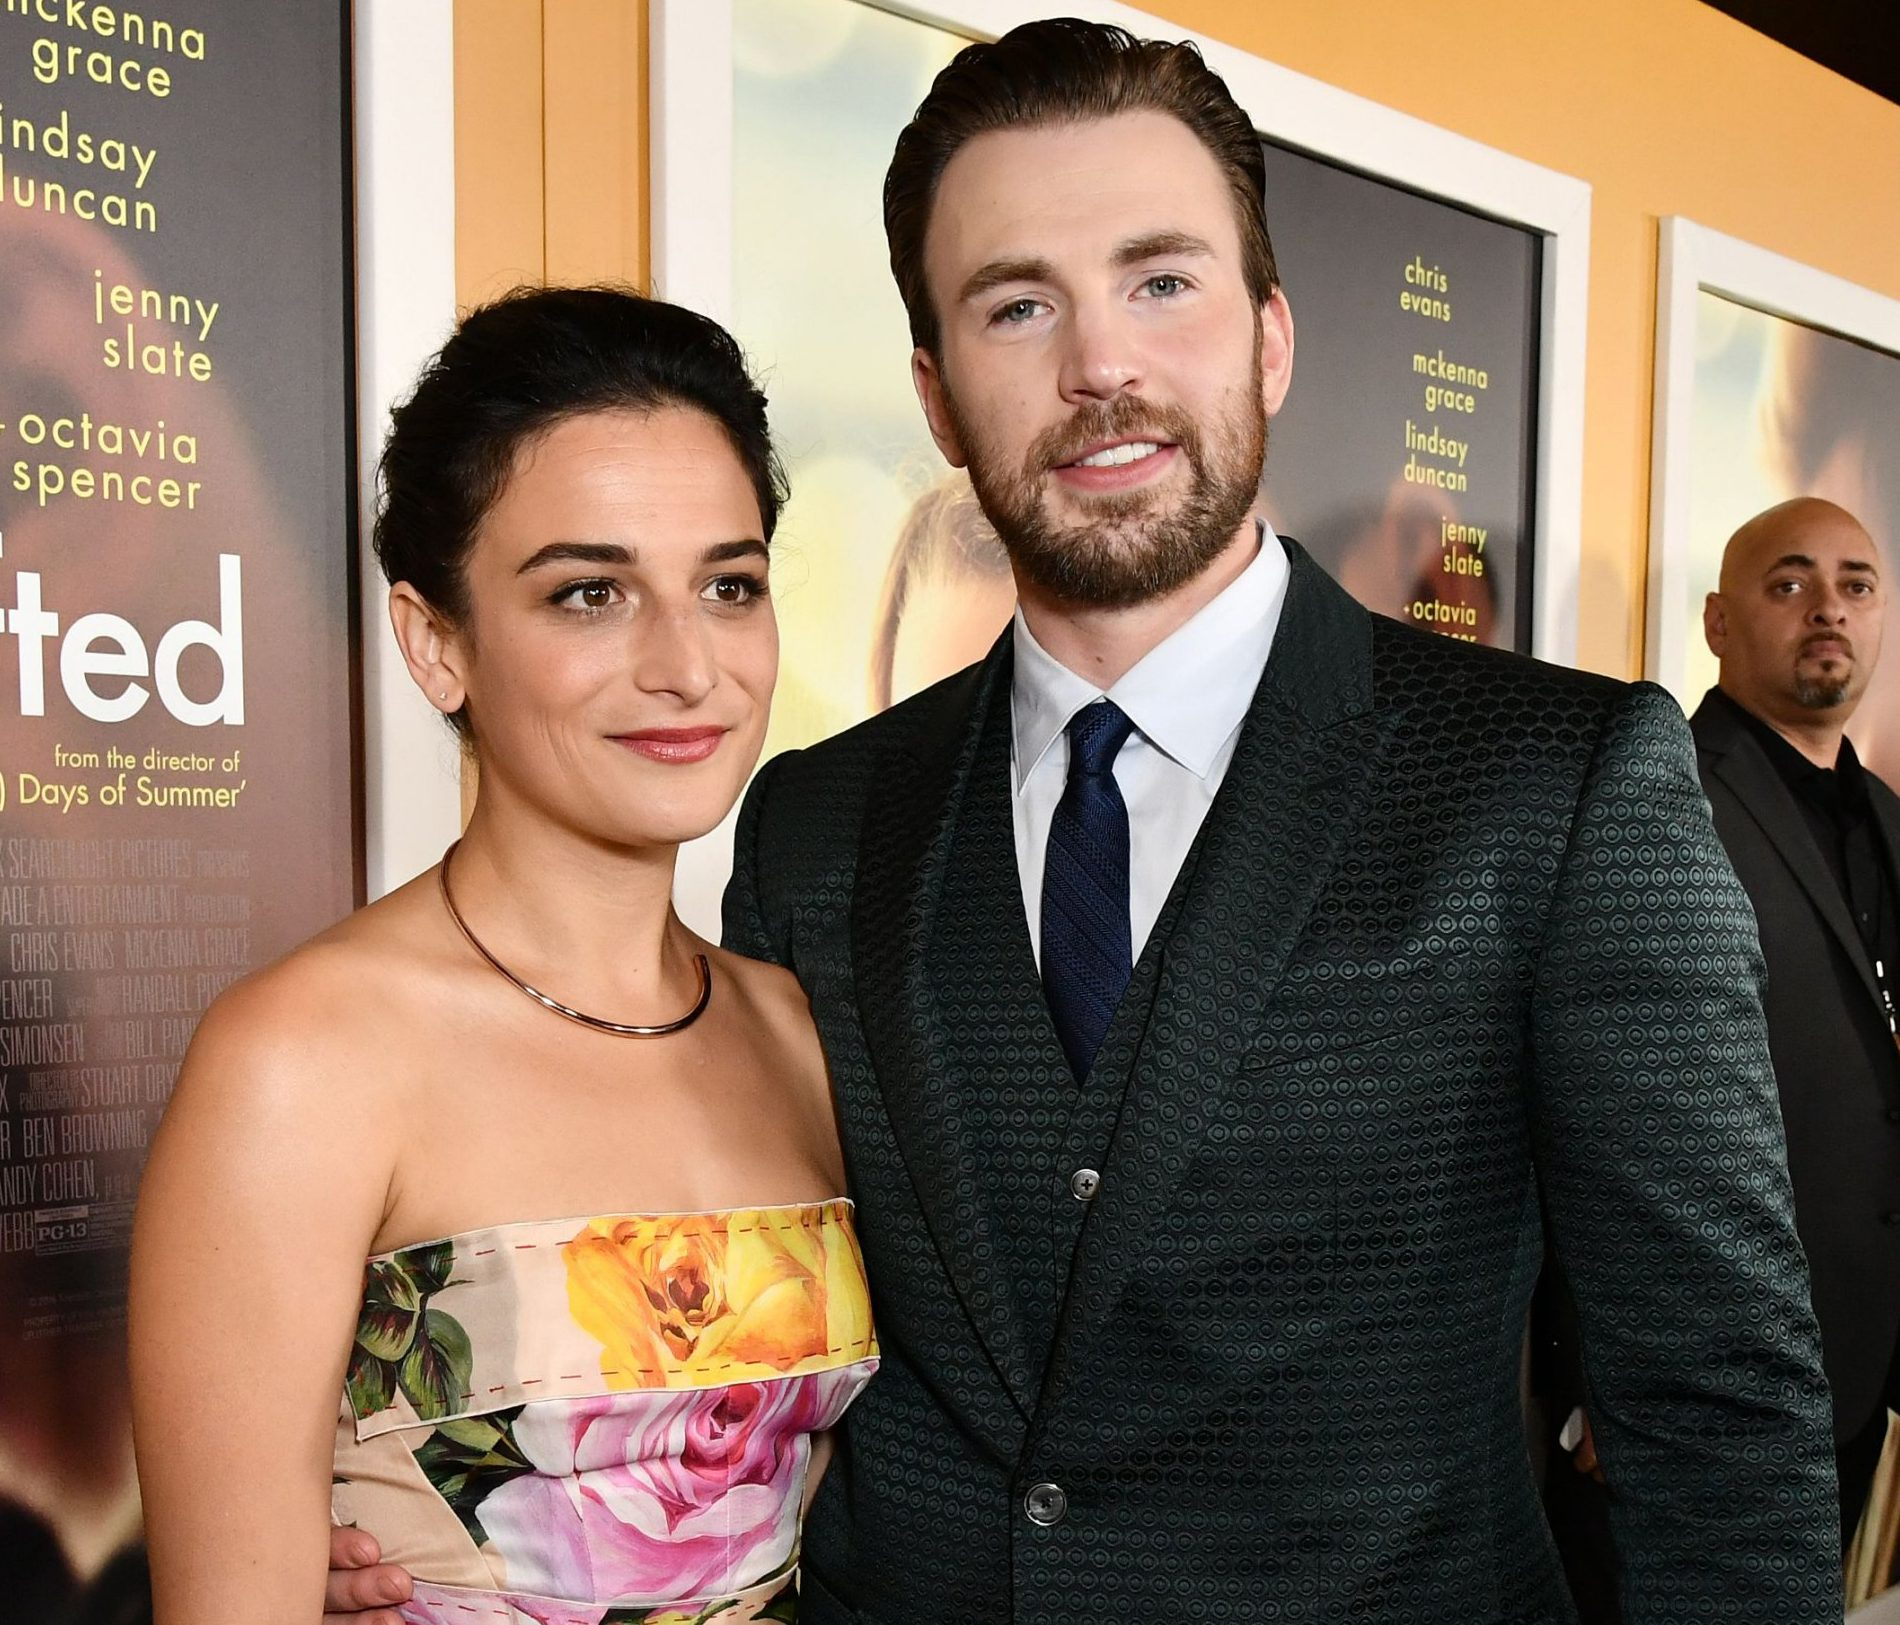 Mandatory Credit: Photo by Rob Latour/Variety/REX/Shutterstock (8564105cg) Jenny Slate and Chris Evans 'Gifted' film premiere, Arrivals, Los Angeles, USA - 04 Apr 2017